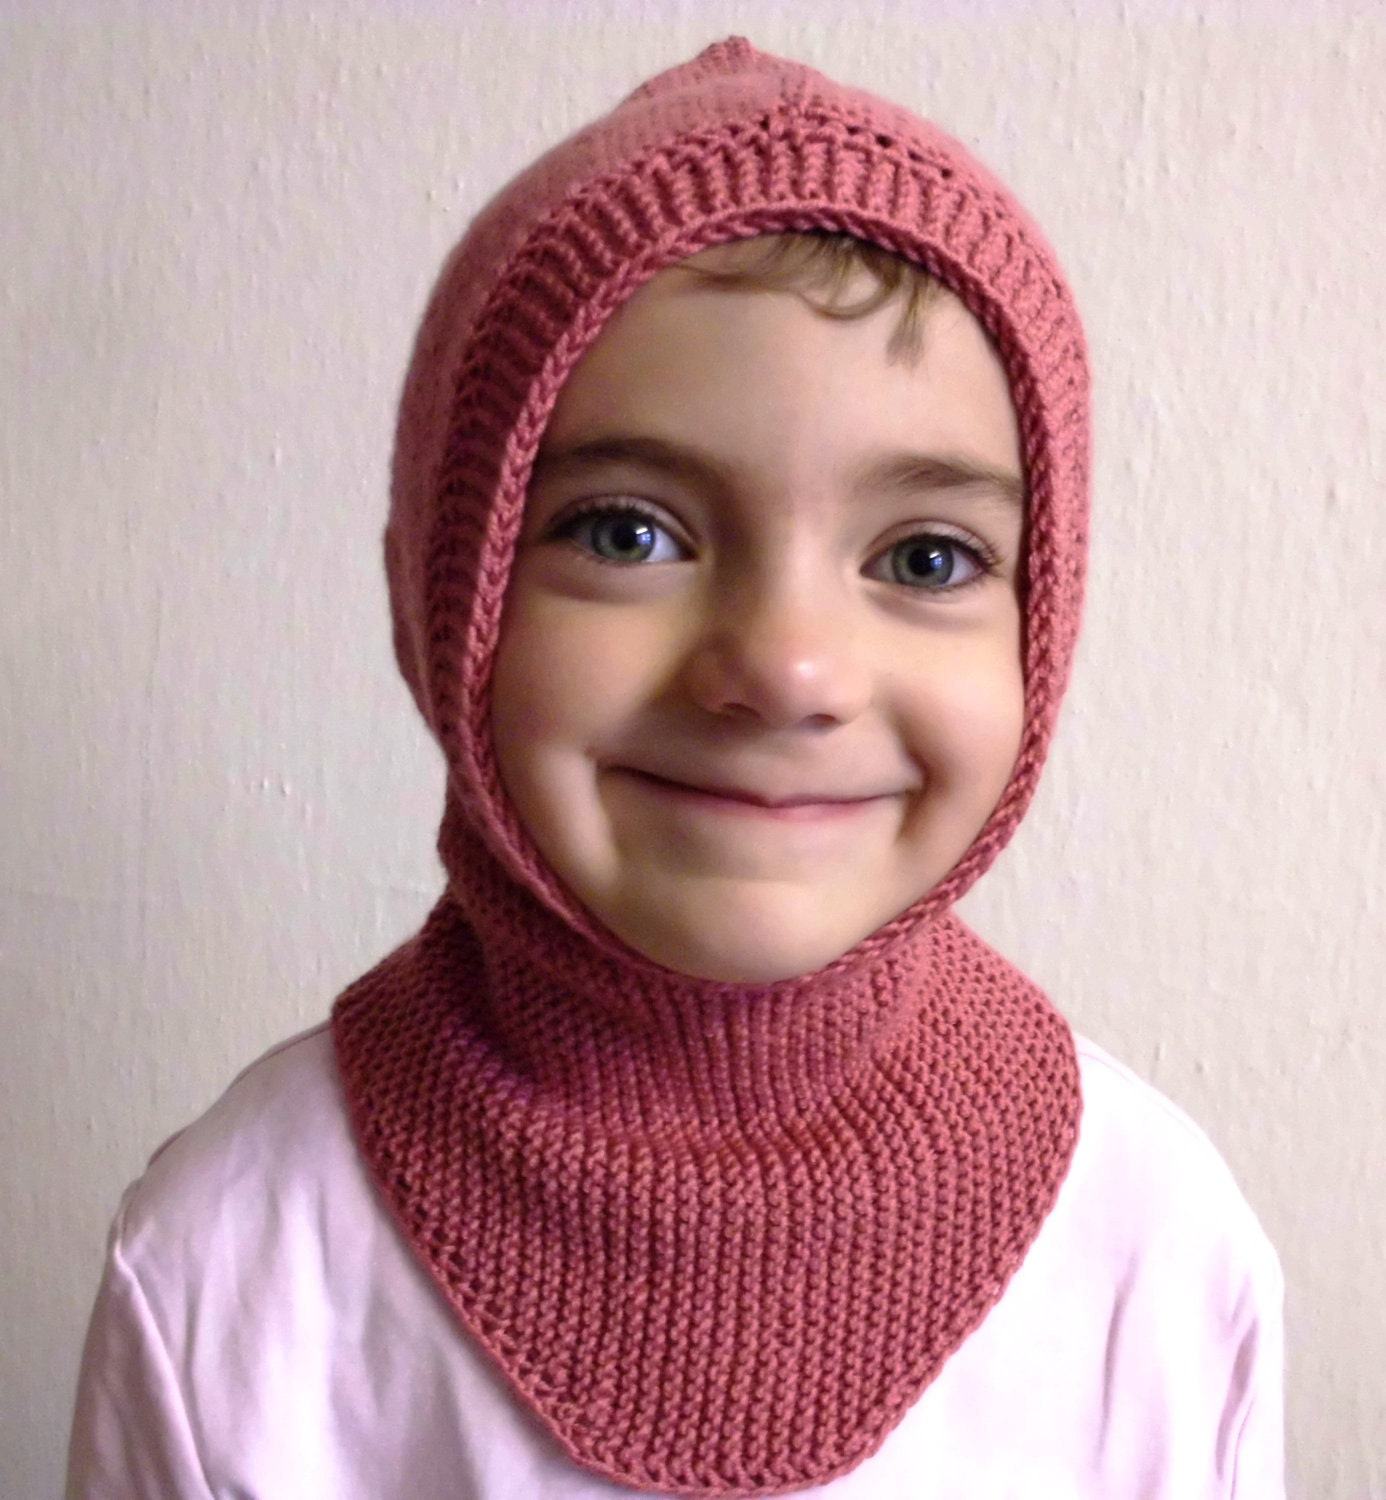 CUSTOM WORK - Adult or Kids knit hood cap shawl scarf turtleneck collar